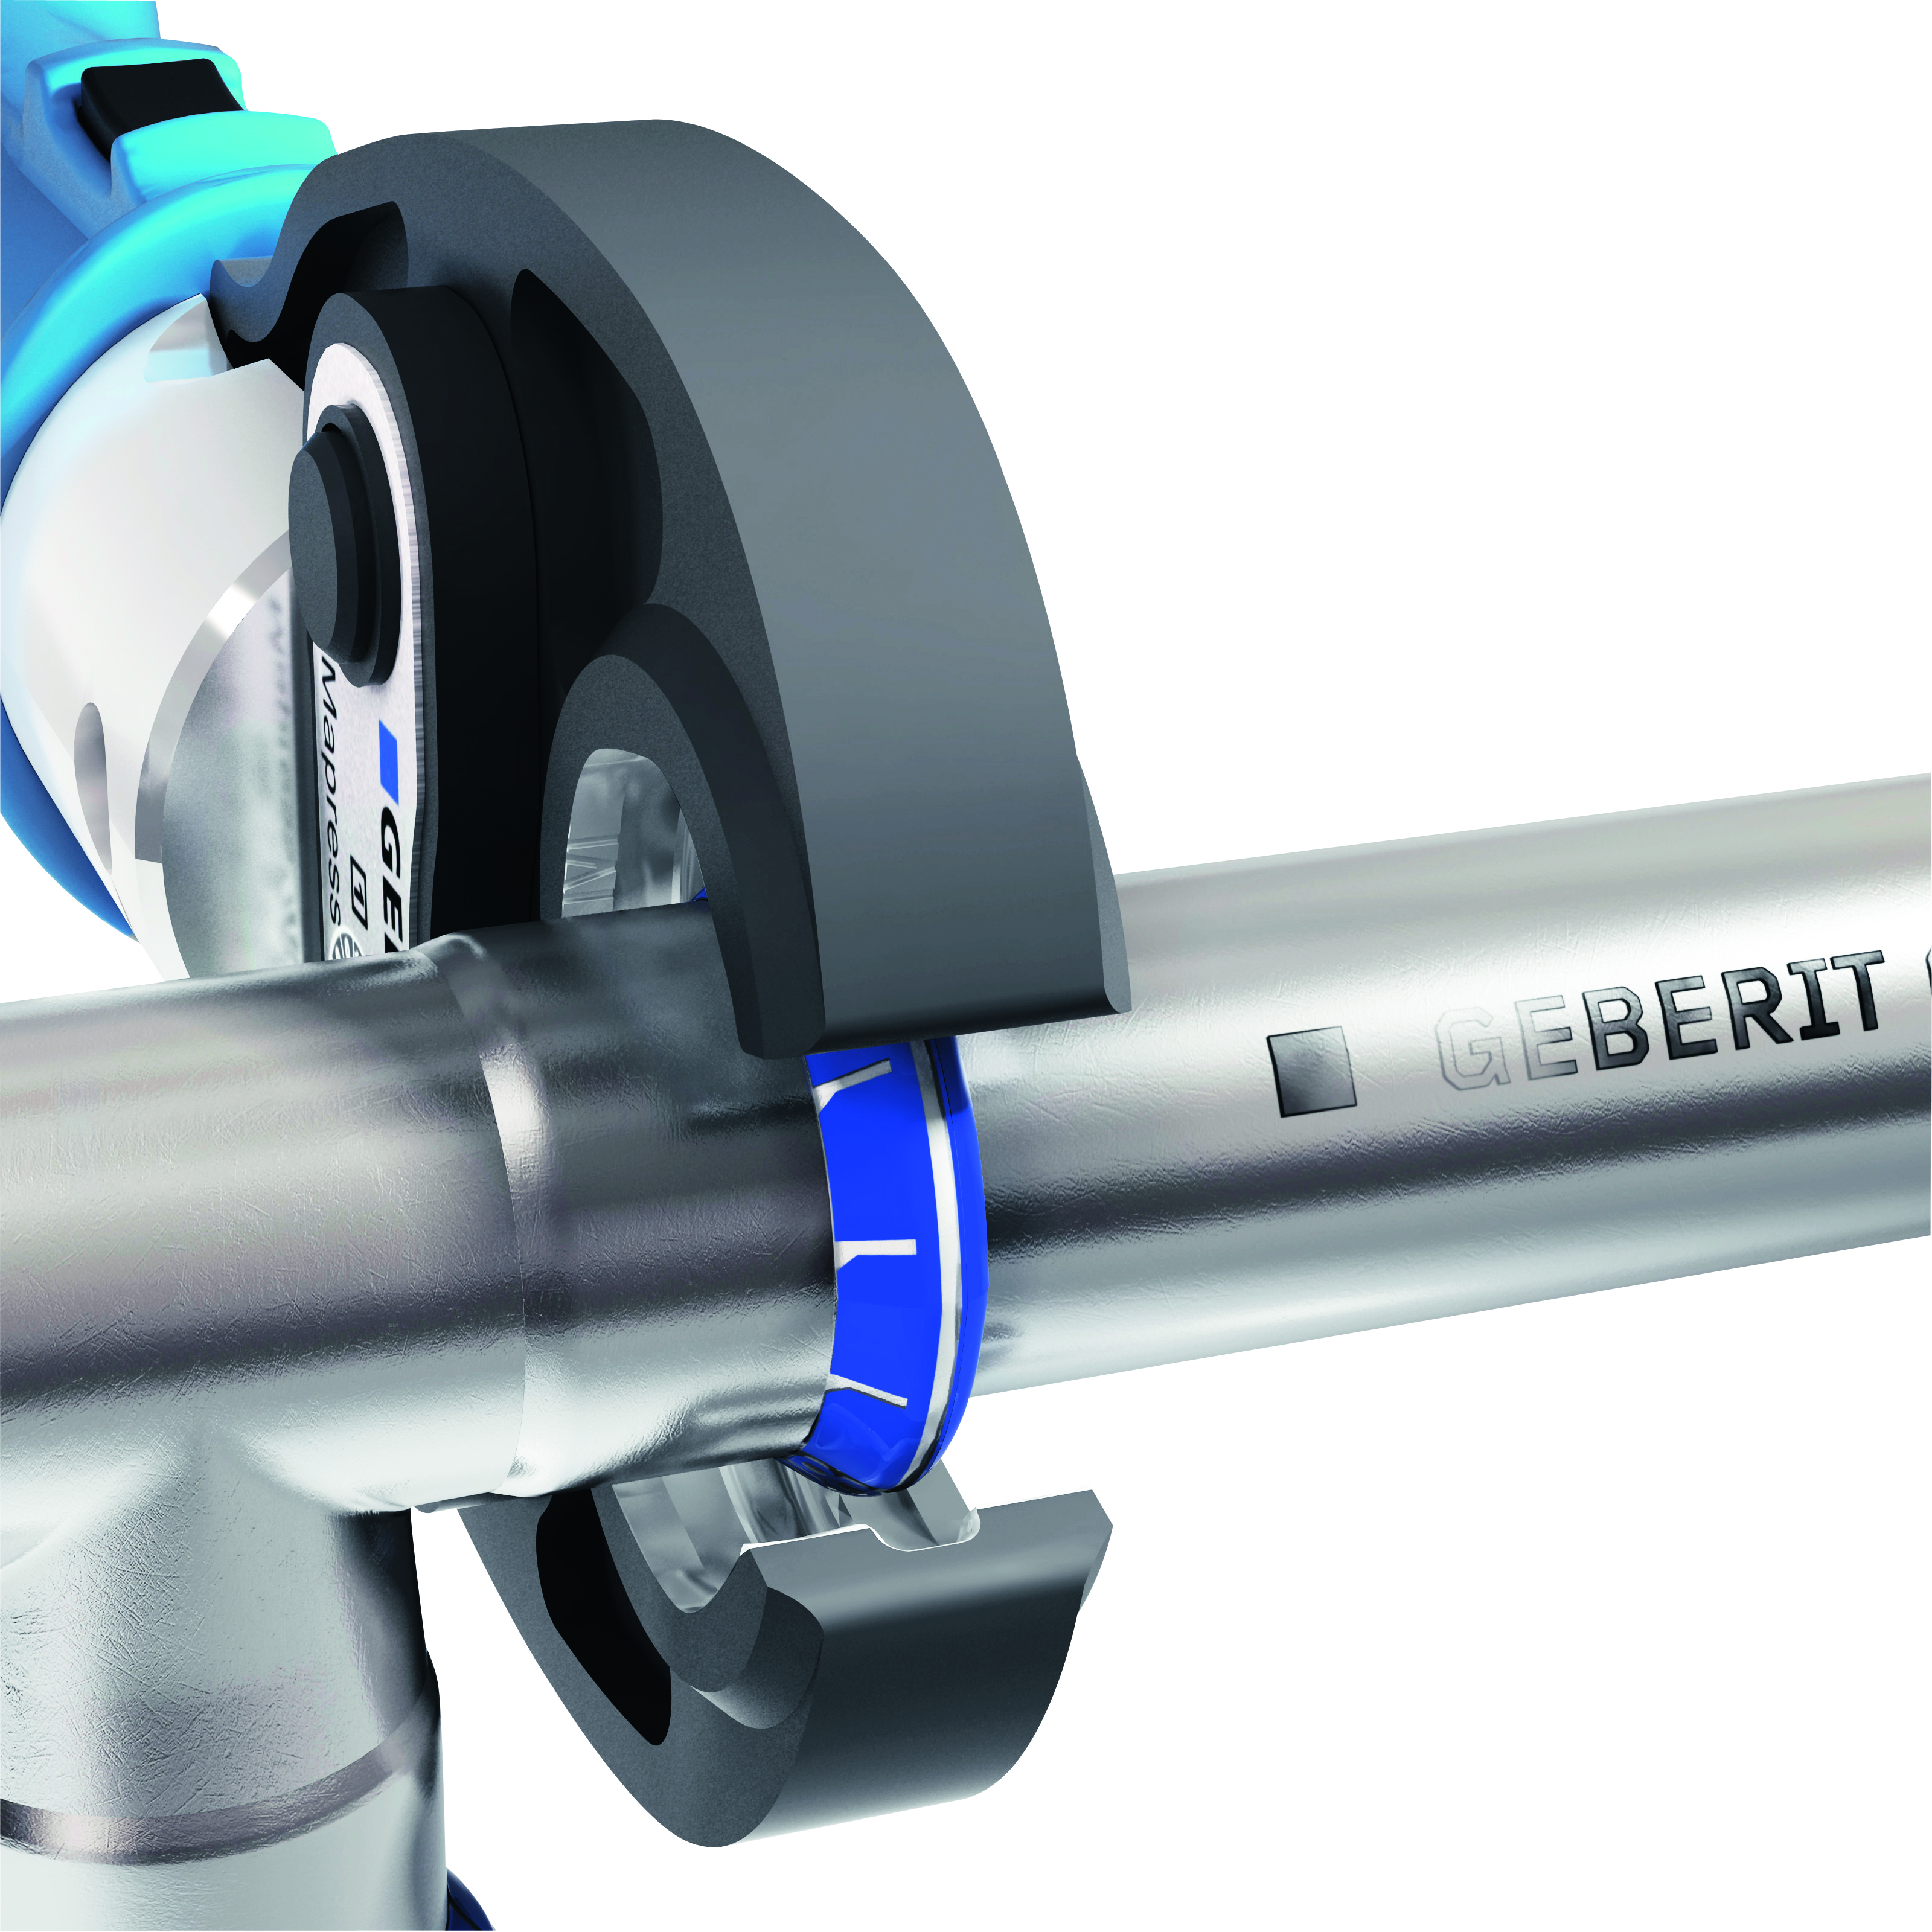 Geberit bv netherlands maritime technology for Geberit system